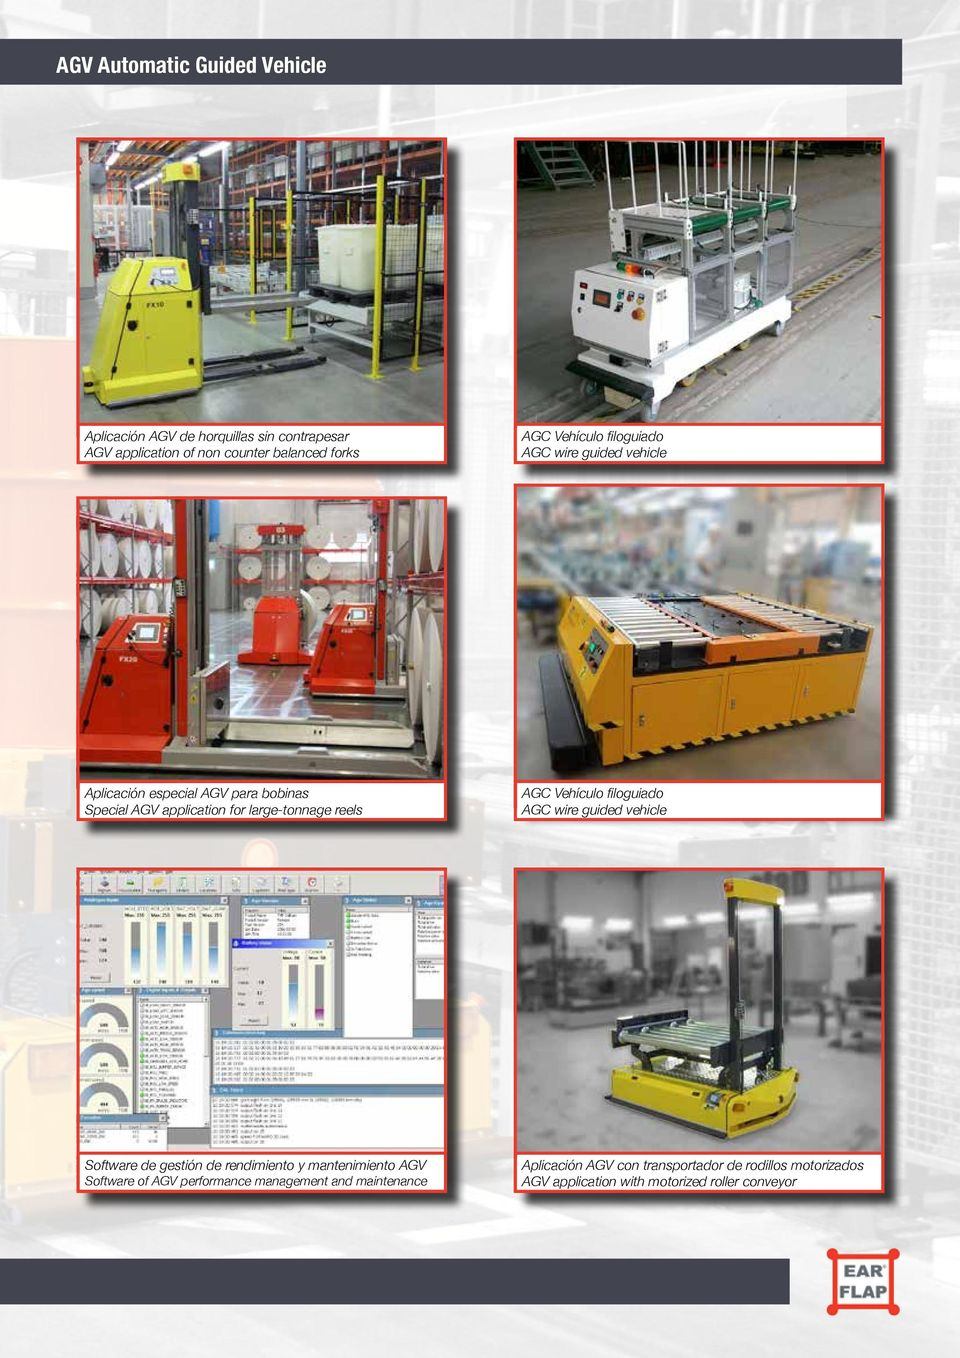 AGC Vehículo filoguiado AGC wire guided vehicle Software de gestión de rendimiento y mantenimiento AGV Software of AGV